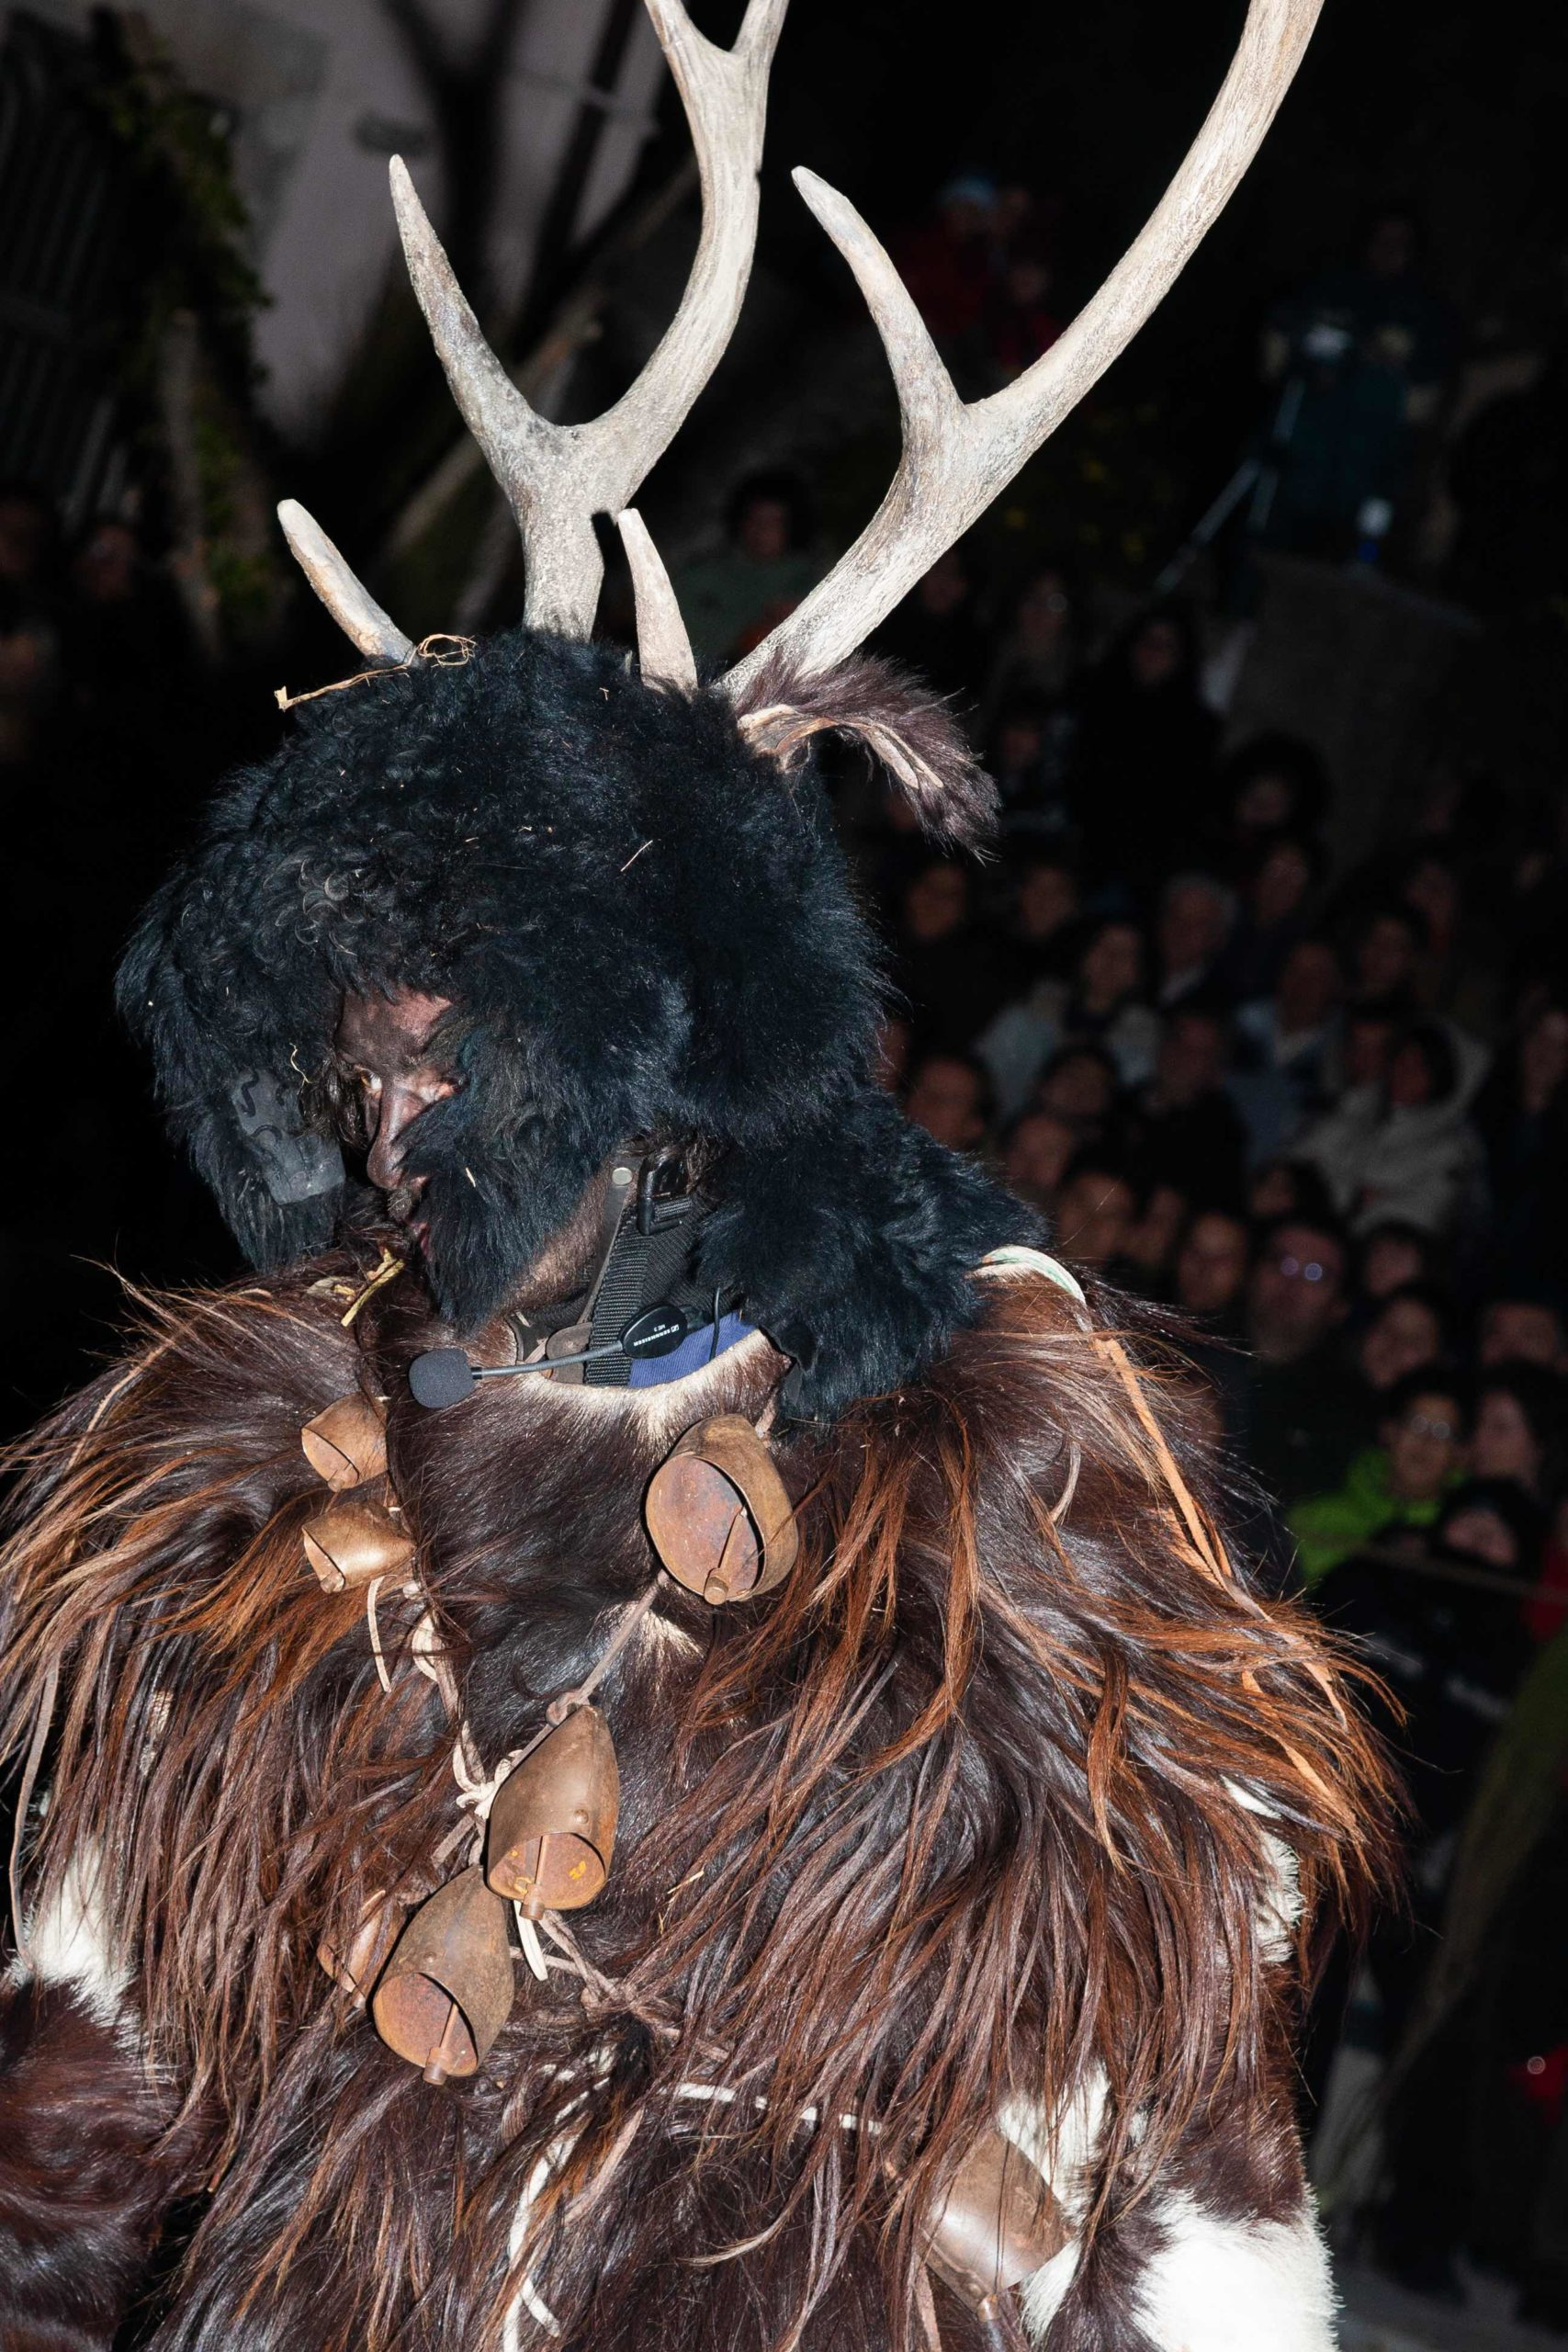 The man's deer ritual, called Gl'Cierv (Uomo Cervo), an Italian traditional carnival